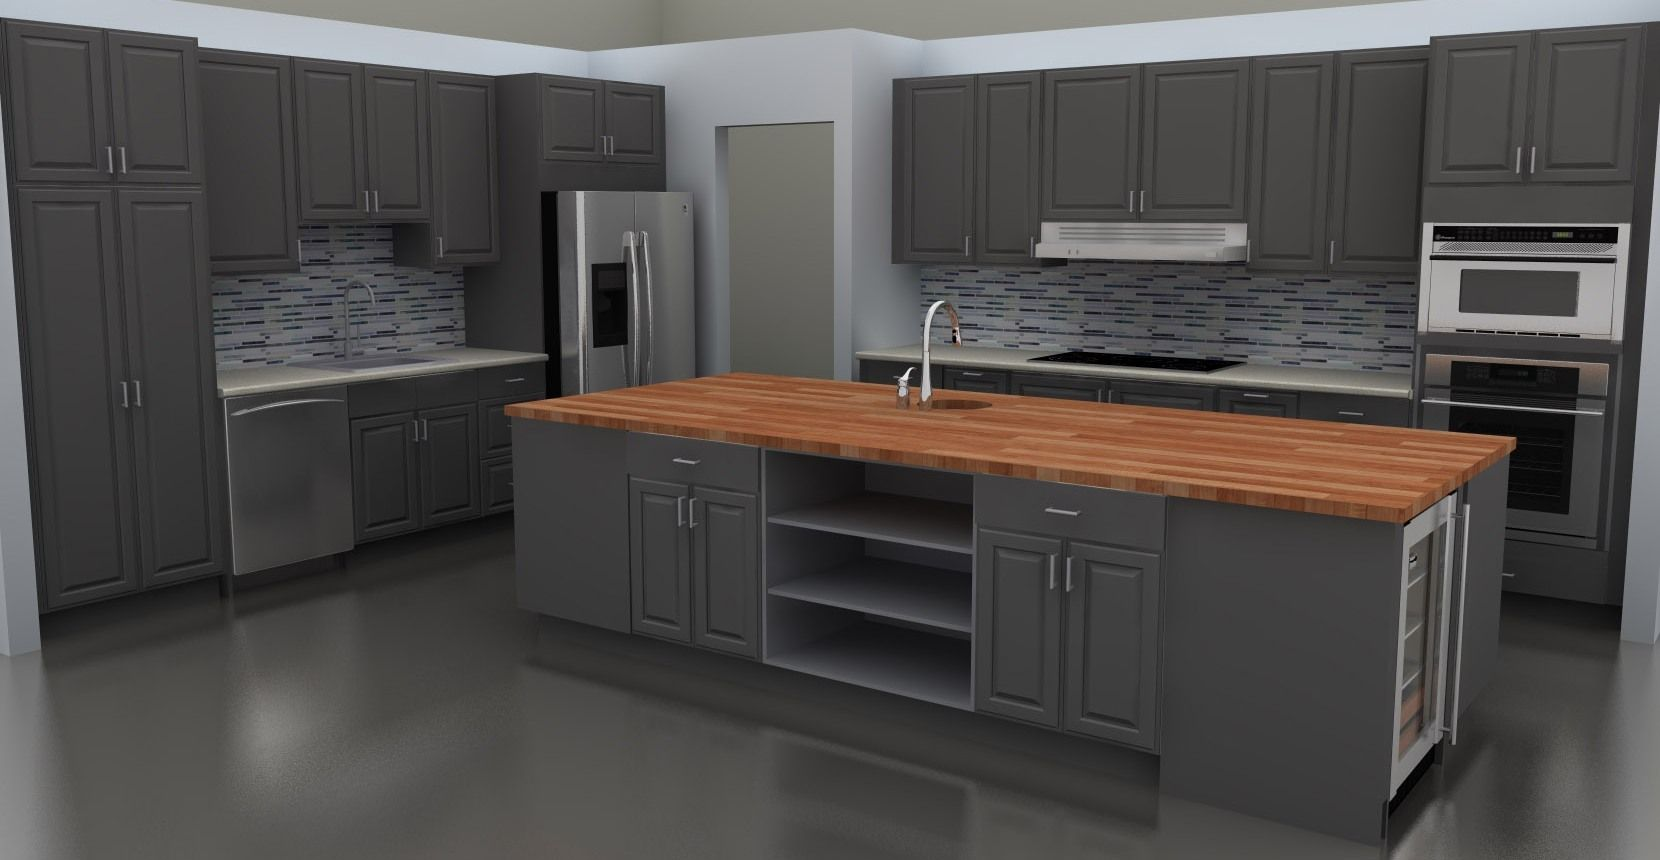 Ikea Kitchen Cabinets the decent styles of the retro ikea kitchen cabinets gray